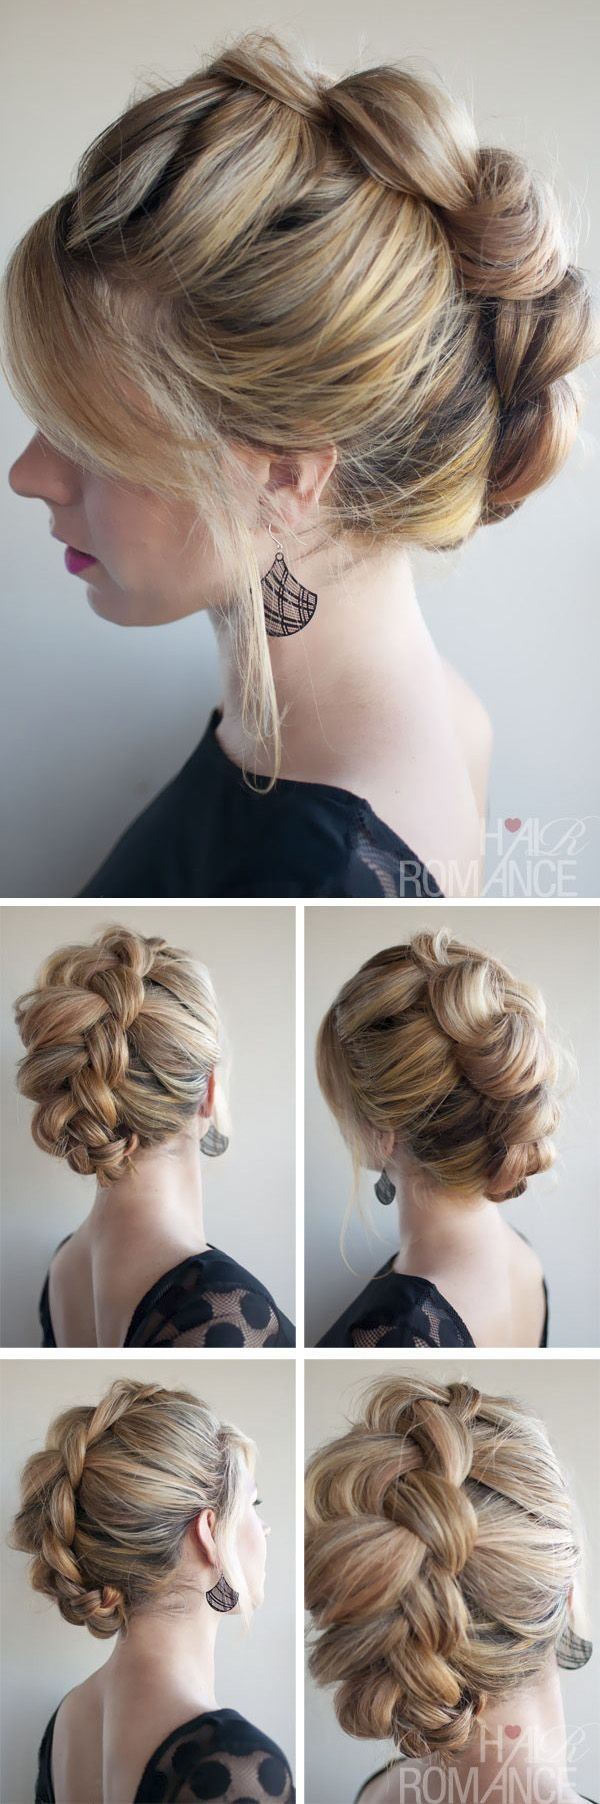 The Best 25 Best Ideas About Chic Hairstyles On Pinterest Tuto Pictures